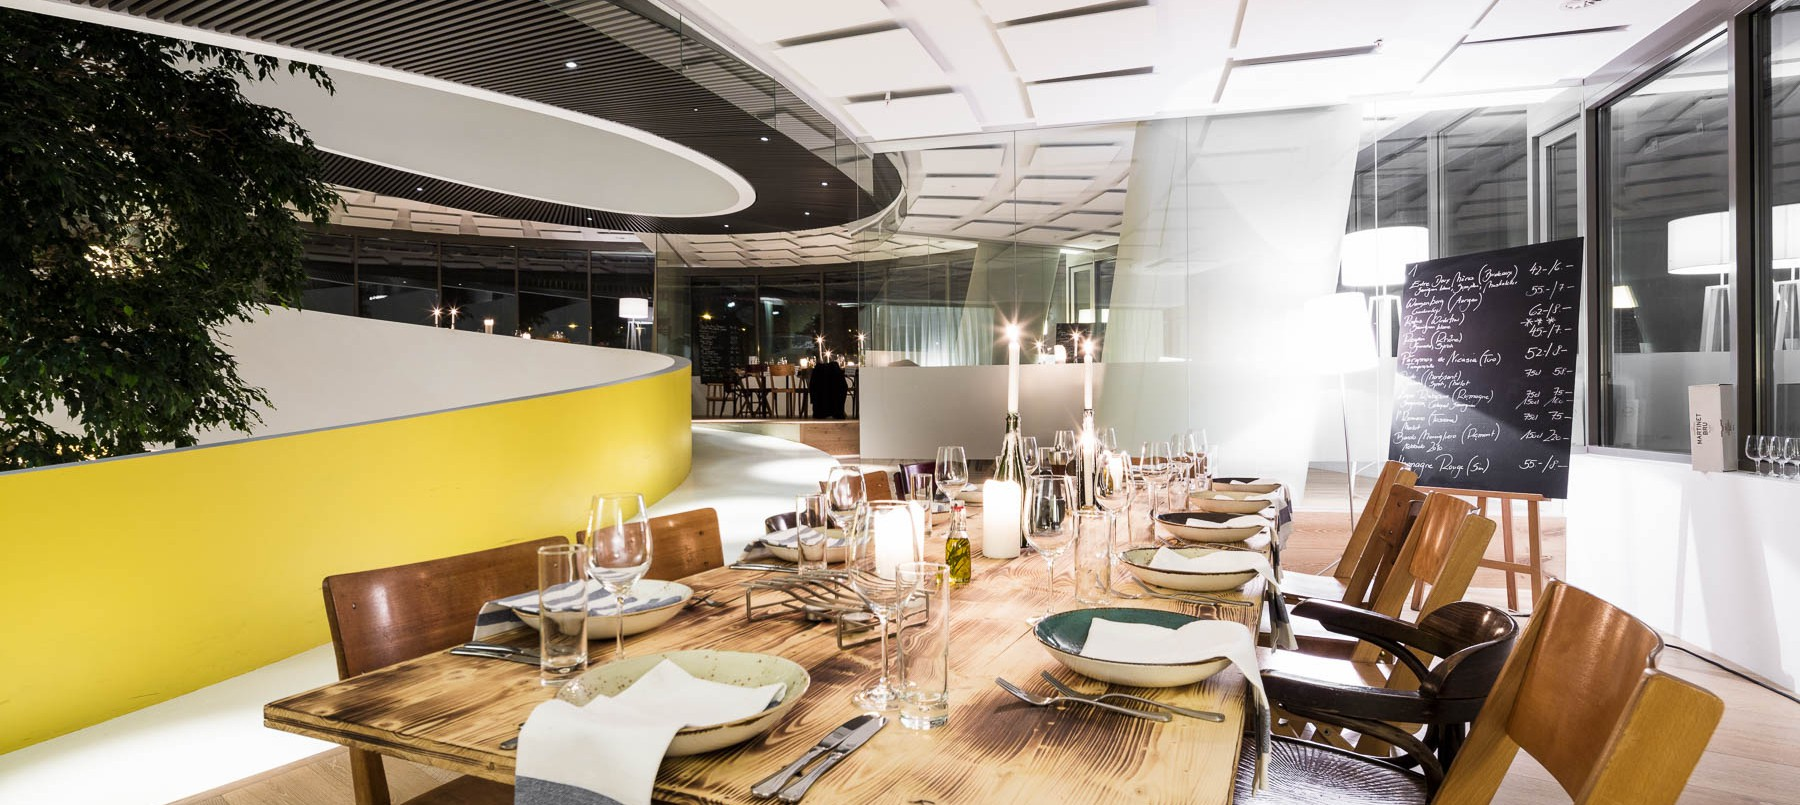 The Cocoon – Pop Up Restaurant auf Zeit